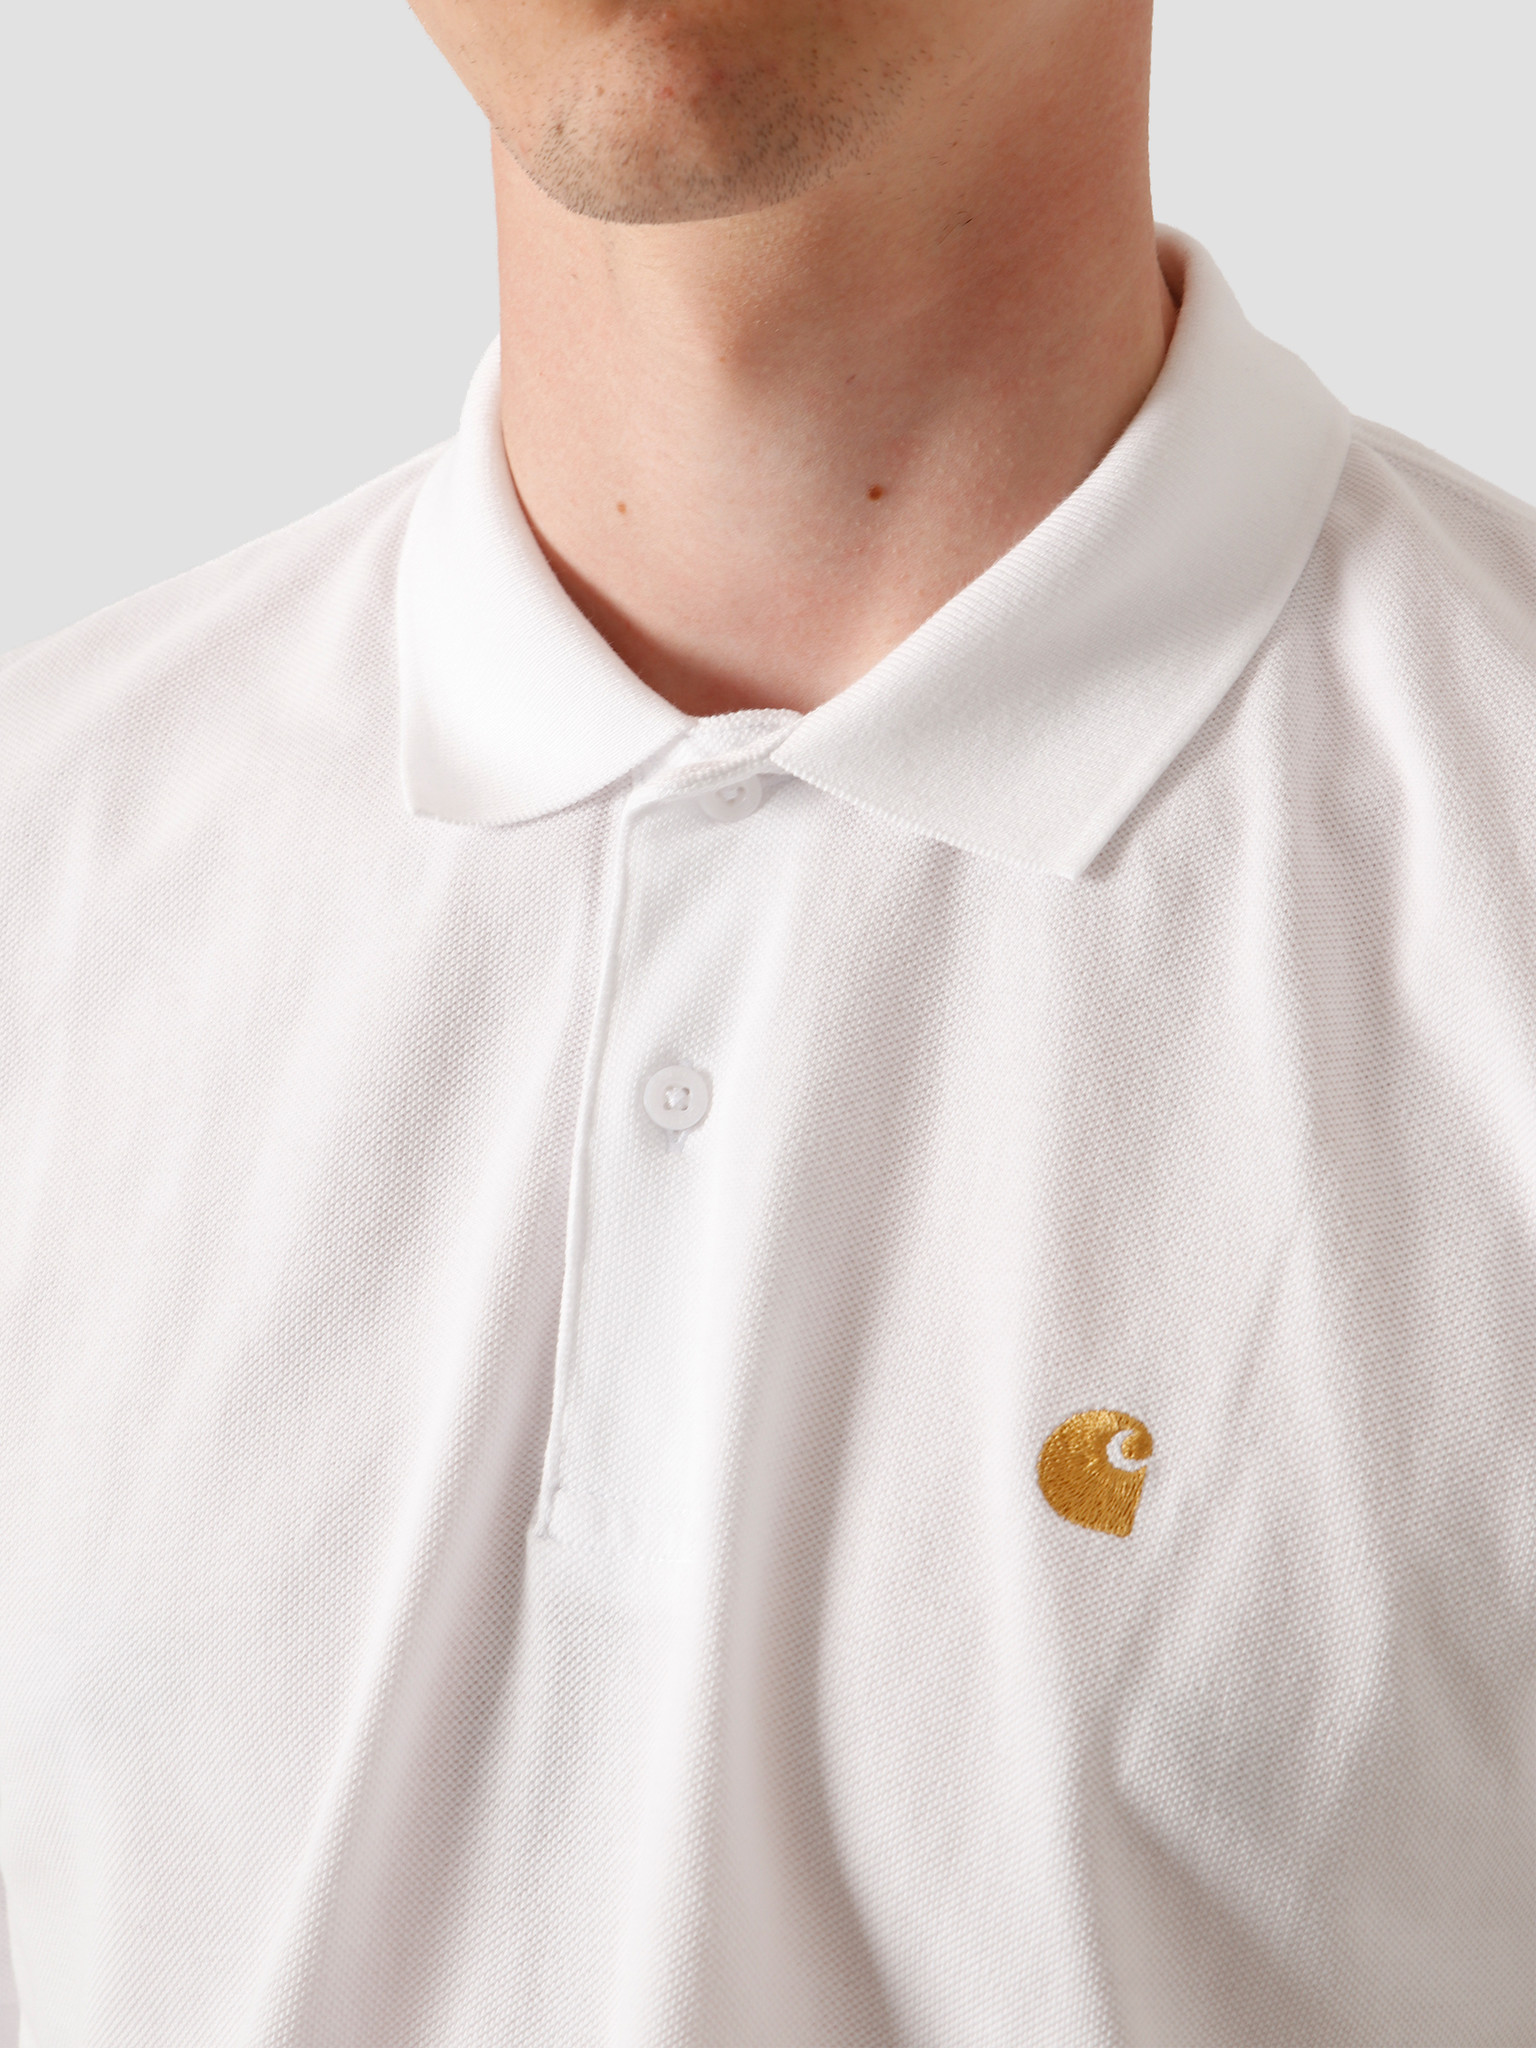 Carhartt WIP Carhartt WIP Chase Pique Polo White Gold I023807